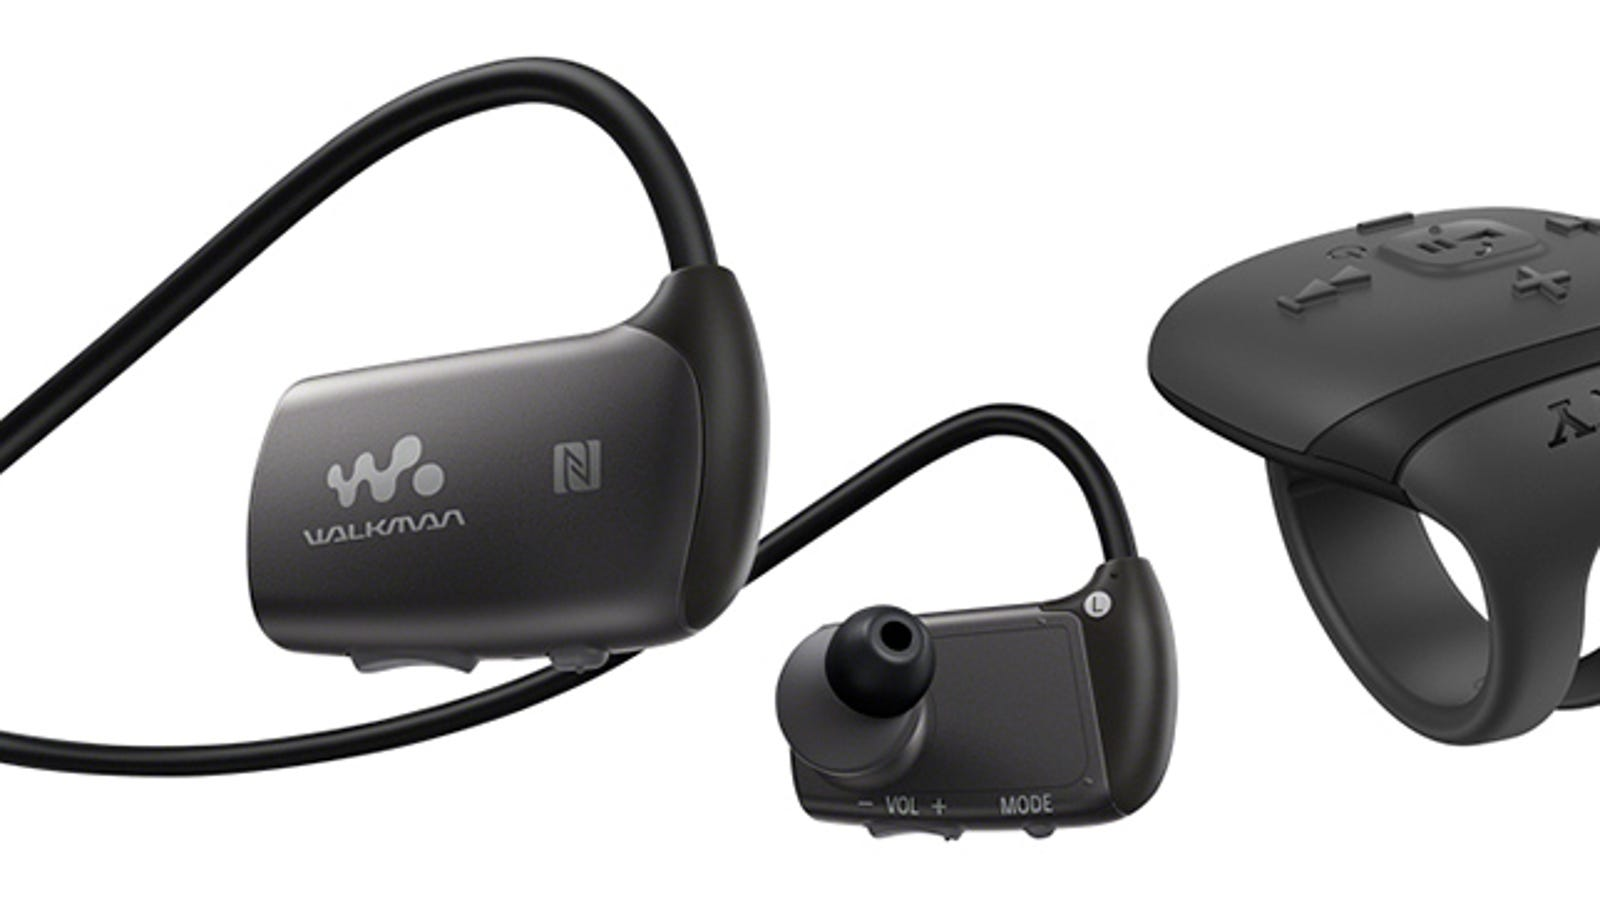 wireless headphones bluetooth for samsung - Sony Includes a Ring Remote With Its New Underwater Headphones